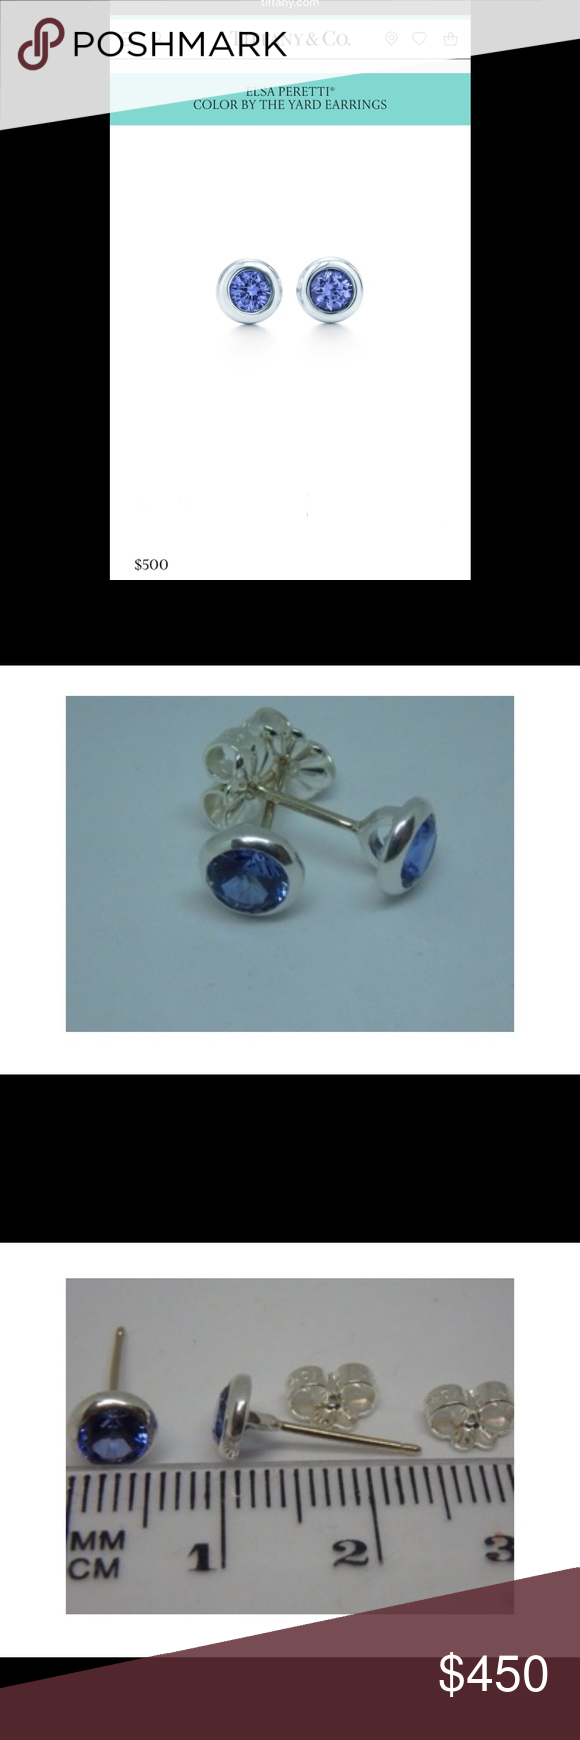 a1ad05d6e Tiffany & Co Color By The Yard Tanzanite Earrings DESCRIPTION & DETAILS  Earrings in sterling silver